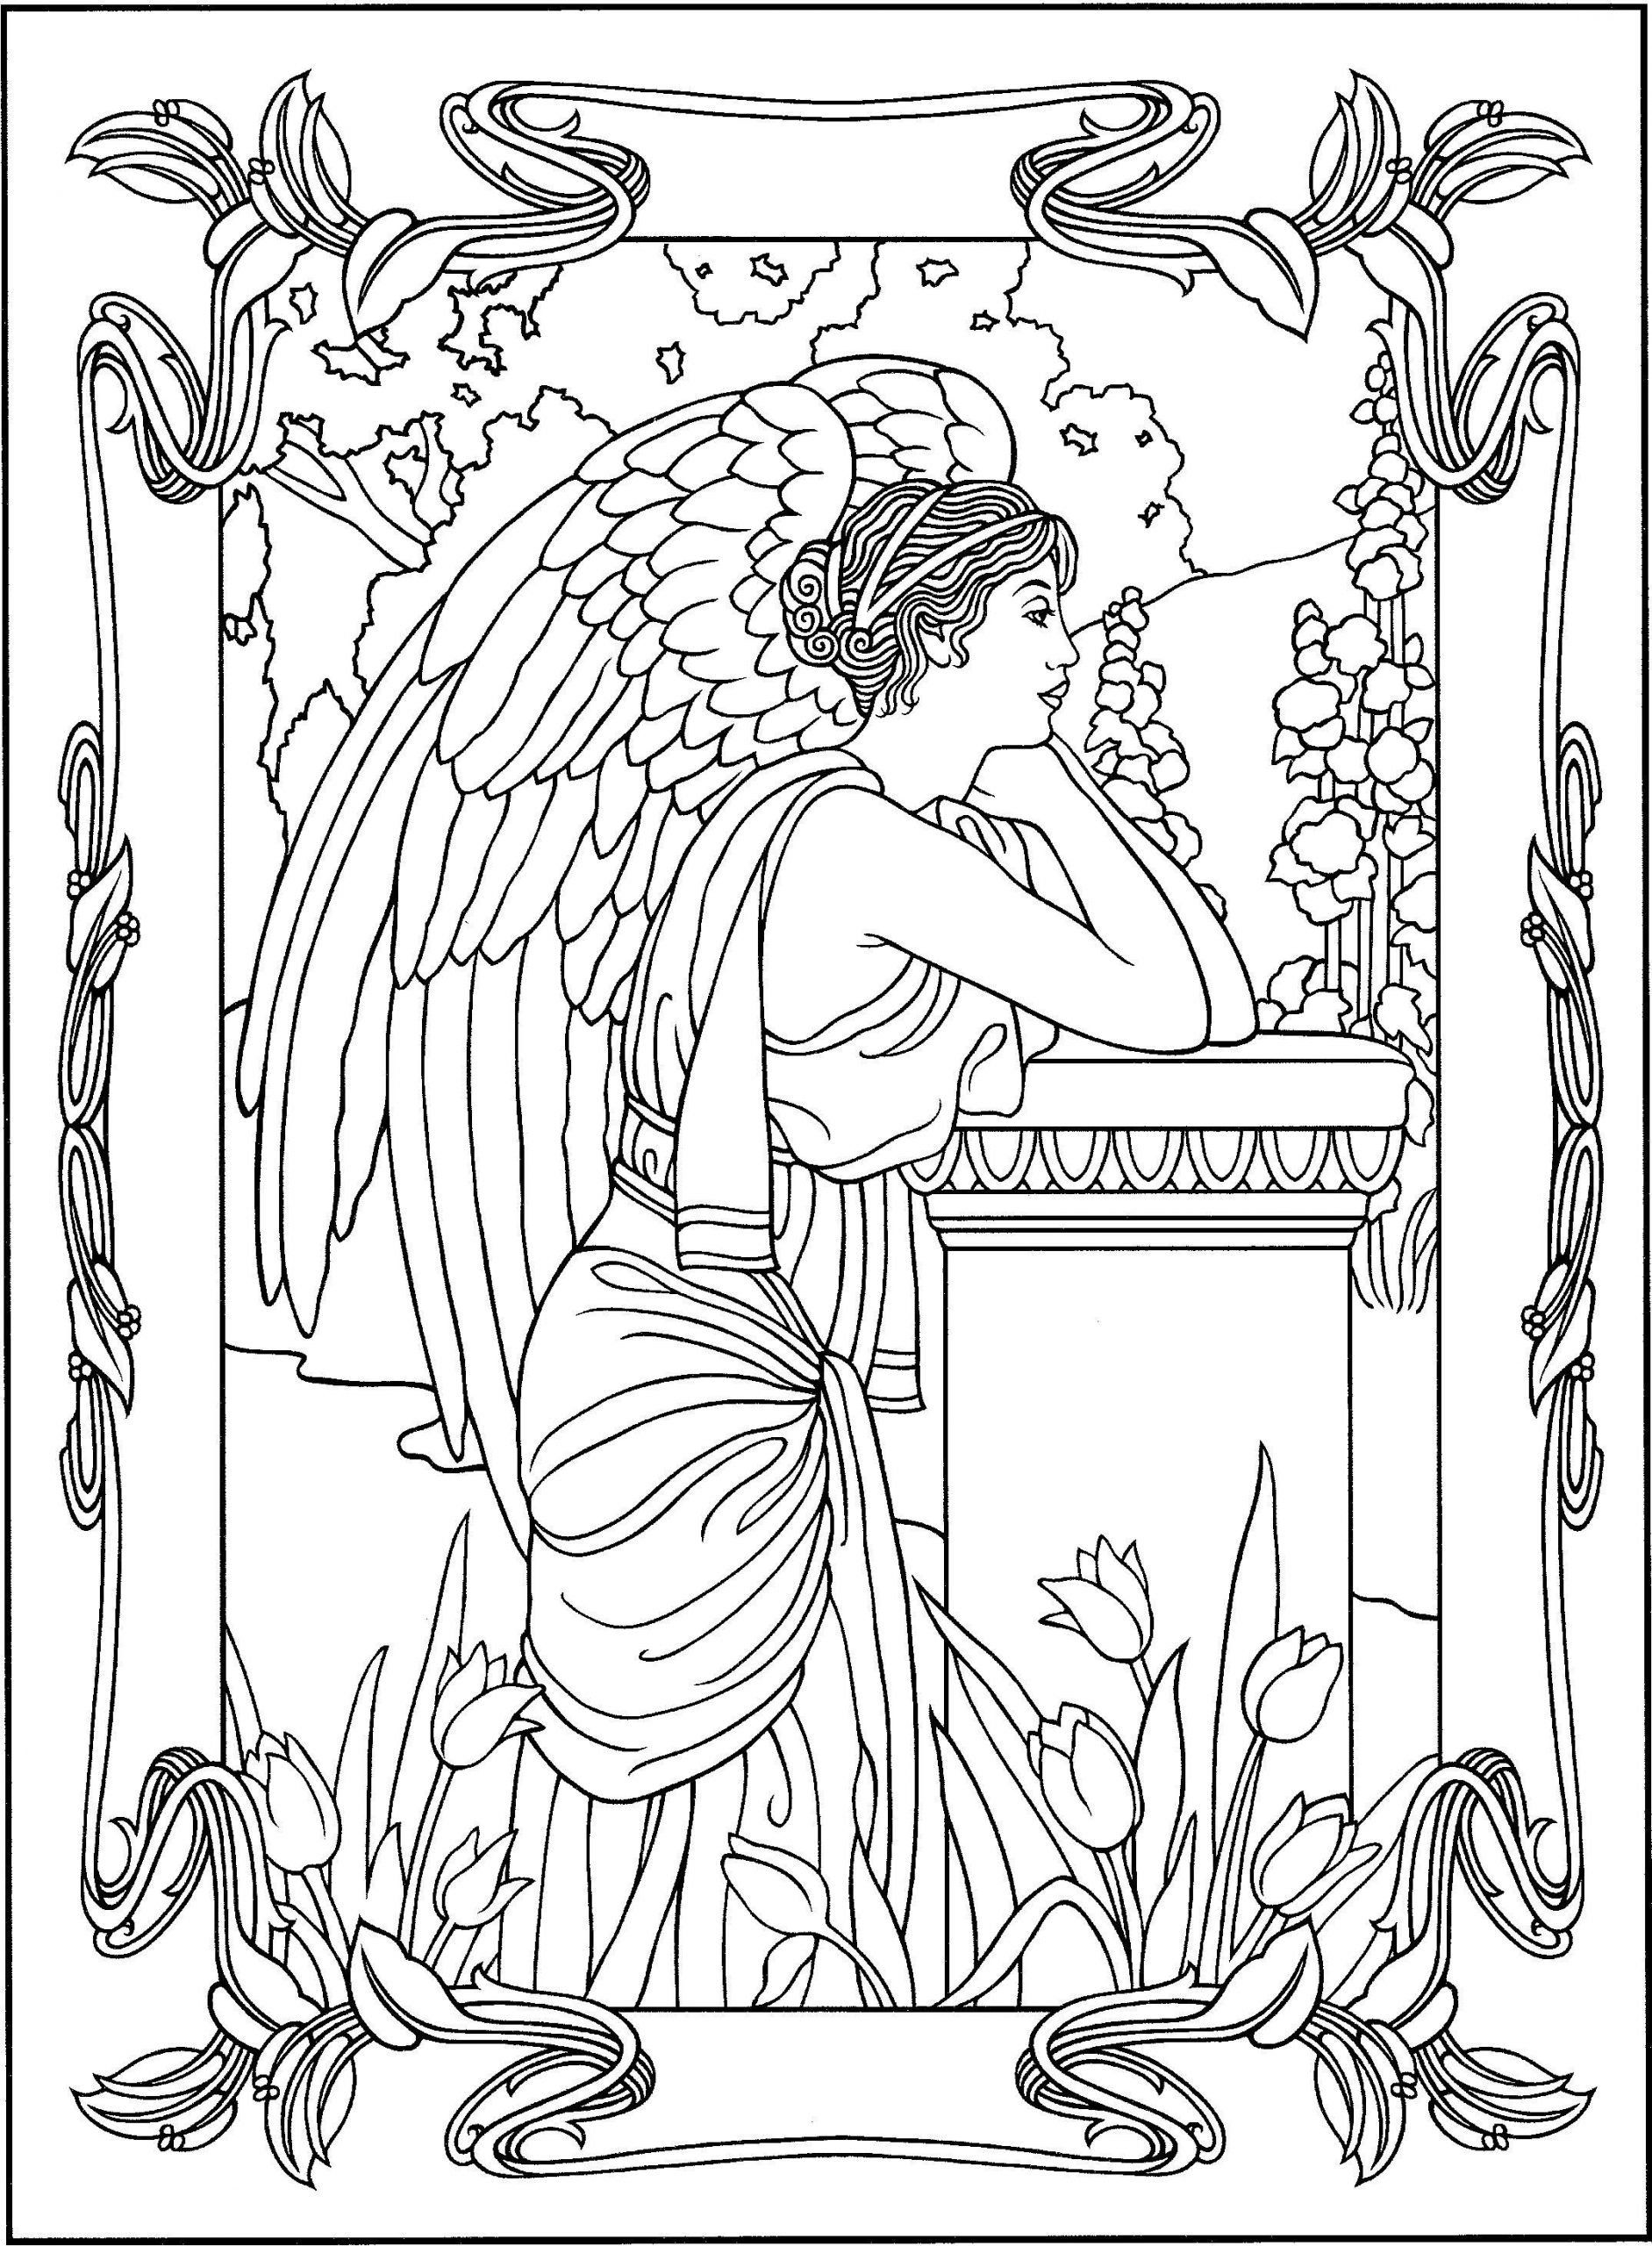 Angel Coloring Books For Adults Angel Coloring Page Angel Coloring Pages Mandala Coloring Pages Fairy Coloring Pages